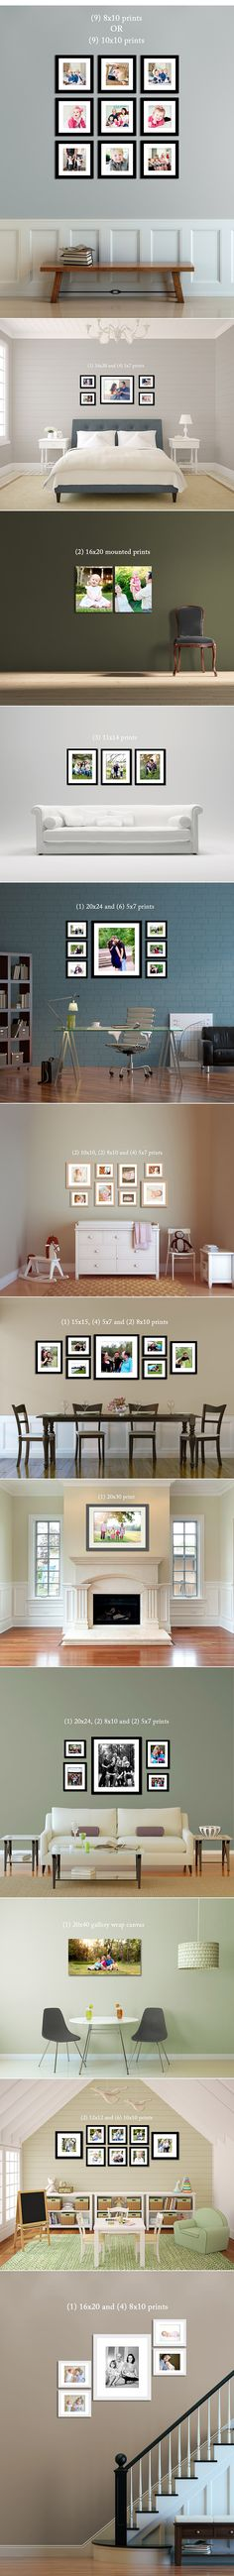 Interior decoration how to hang photos picture home design interior 25 Examples Of How To Display Photos On Your Walls Interior Exterior, Home Interior Design, Modern Interior, Picture Groupings, Picture Arrangements, Frame Arrangements, Photo Arrangement, Photo Grouping, Picture Collages